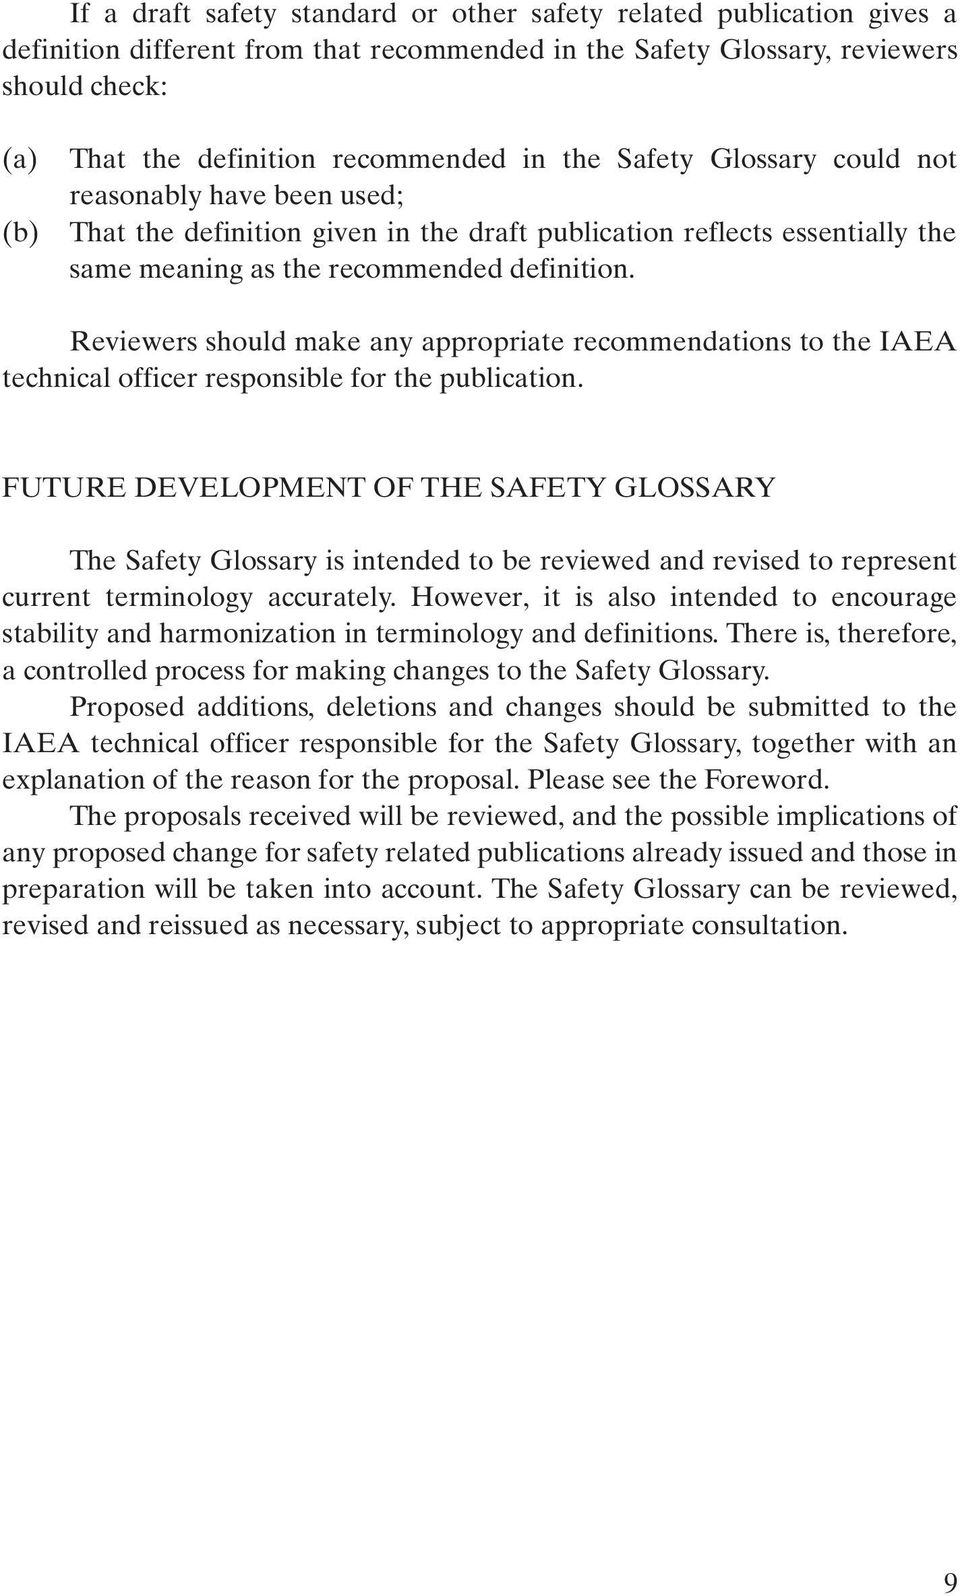 Reviewers should make any appropriate recommendations to the IAEA technical officer responsible for the publication.